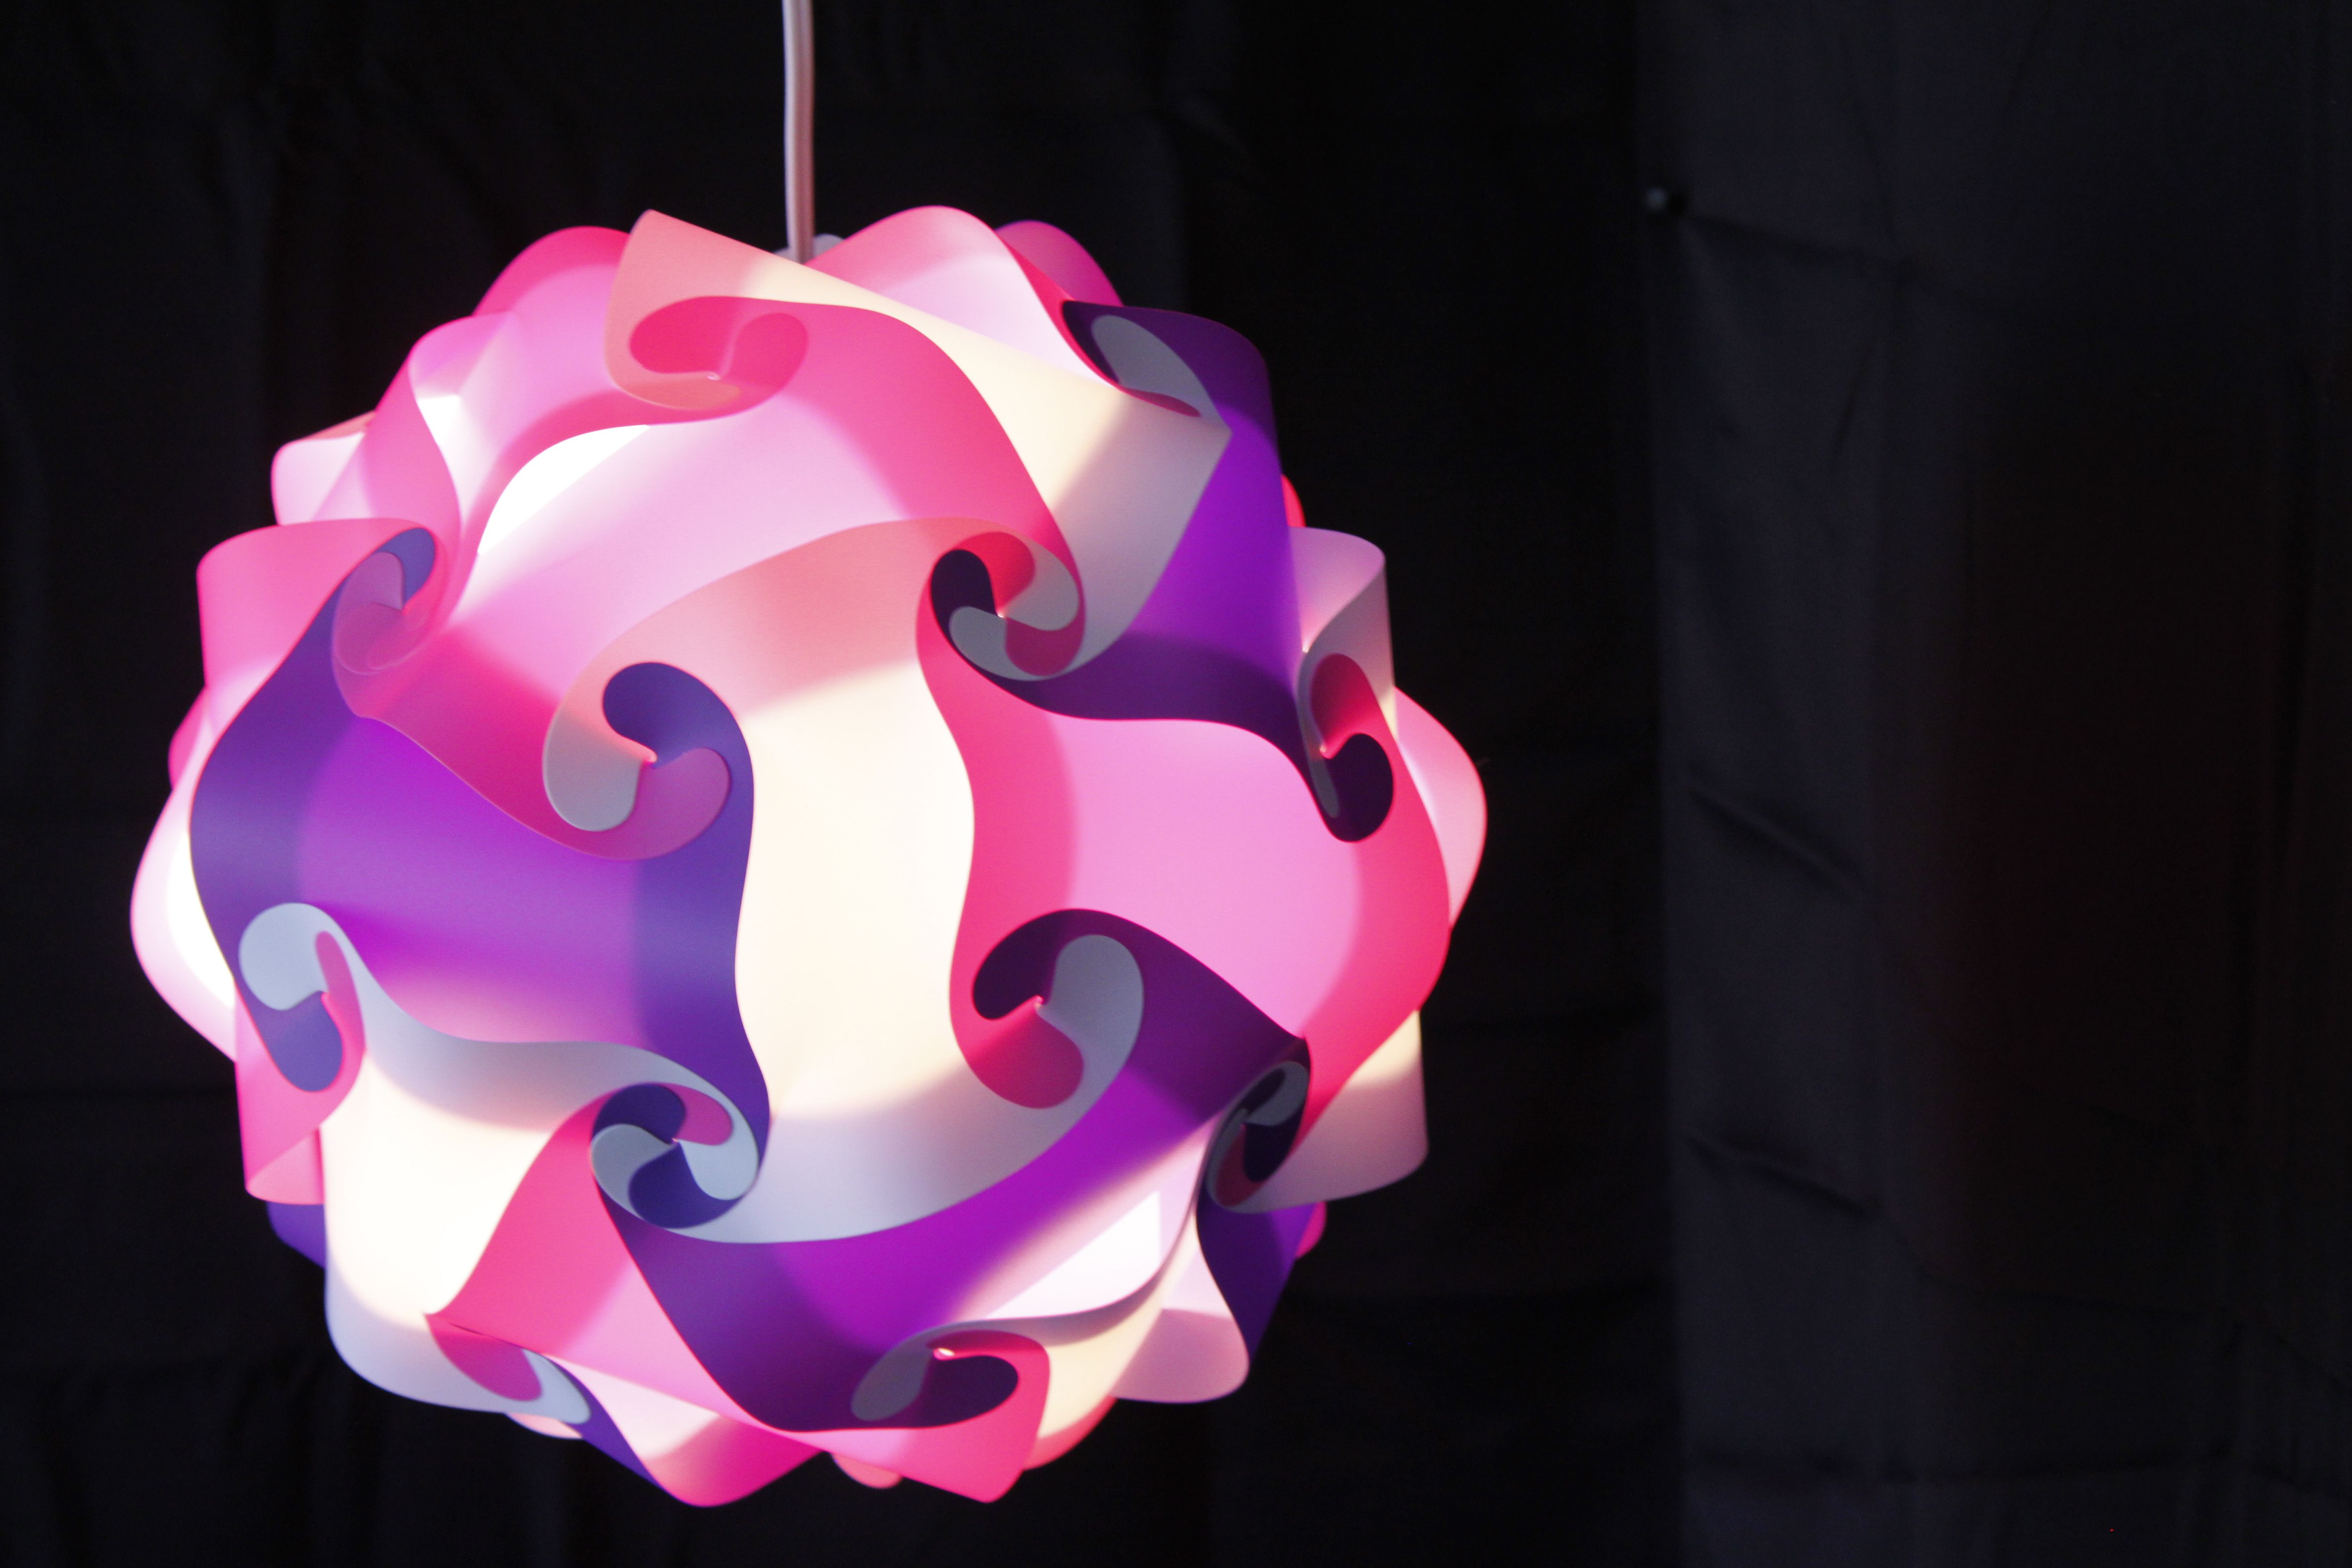 Luvalamps 3d Puzzle Lights Puzzle Lights Infinity Lights 3d Puzzles